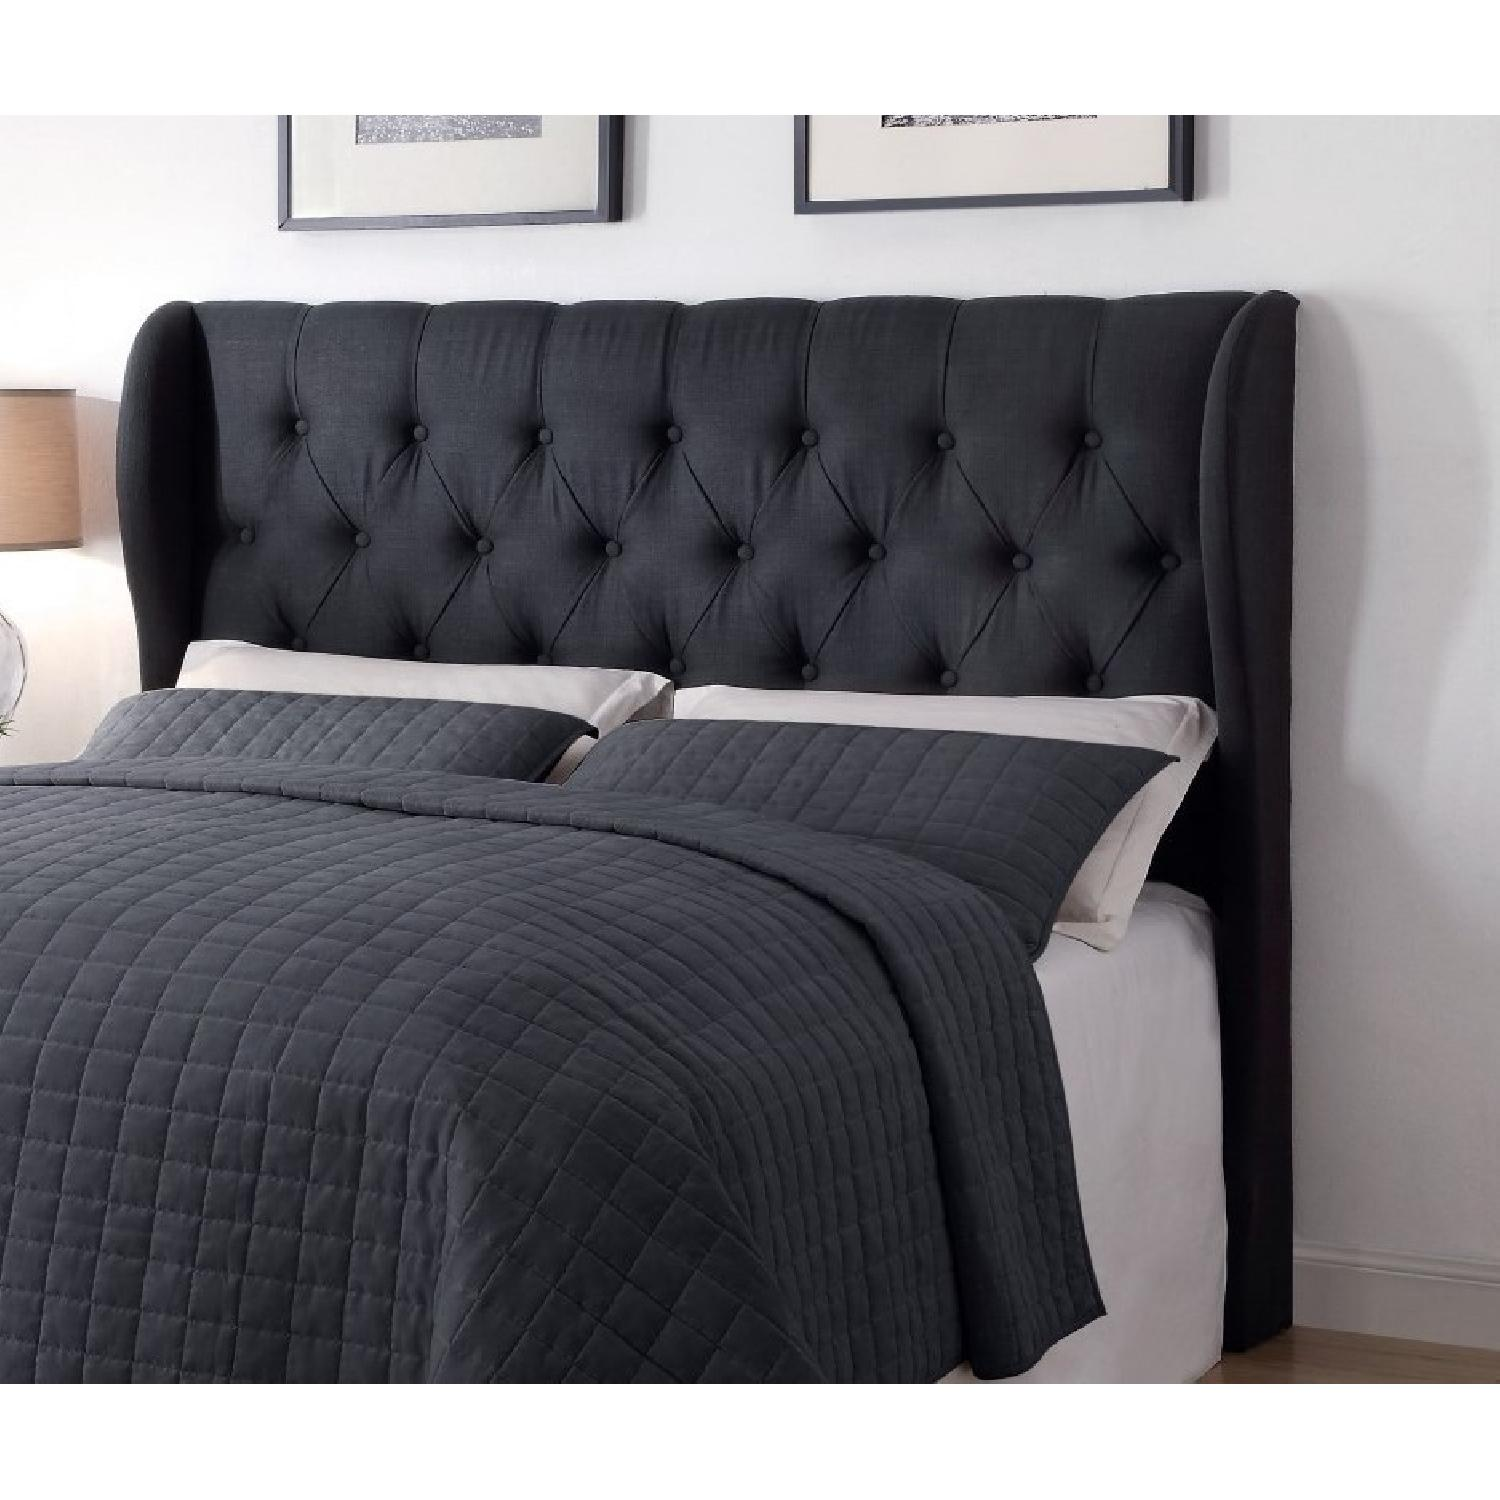 Demi Wing Full/Queen Button Tufted Headboard in Charcoal - image-1